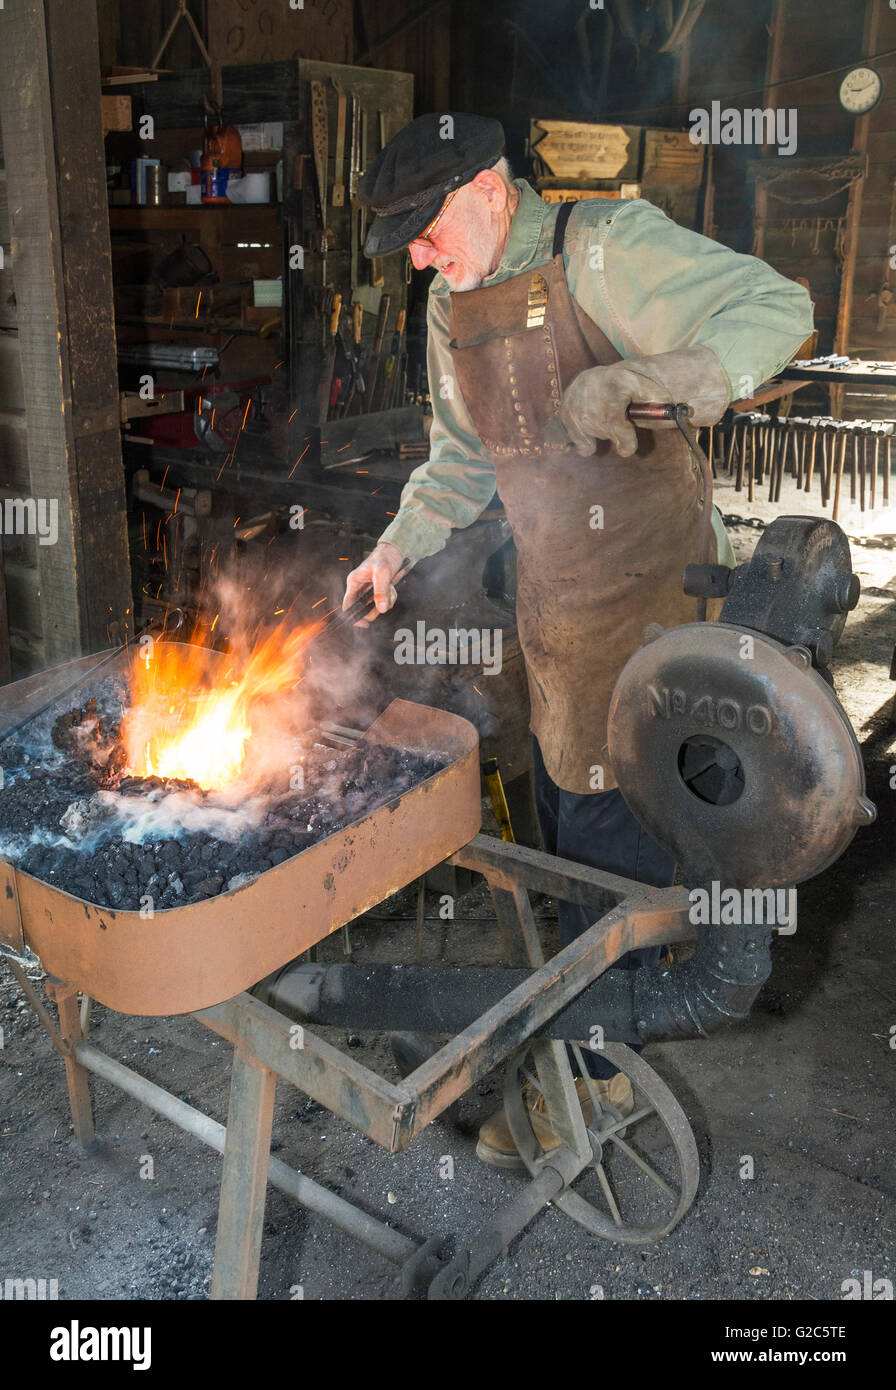 California, Coloma, Marshall Gold Discovery State Historic Park, blacksmith heating metal in forge - Stock Image